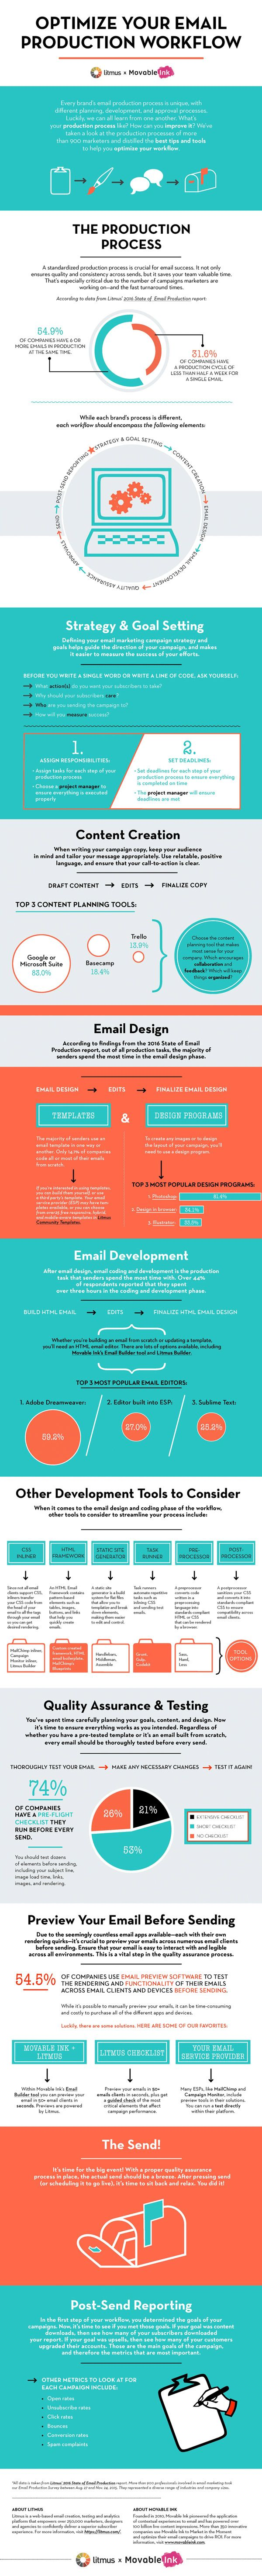 Optmize-Your-Email-Production-Workflow-001